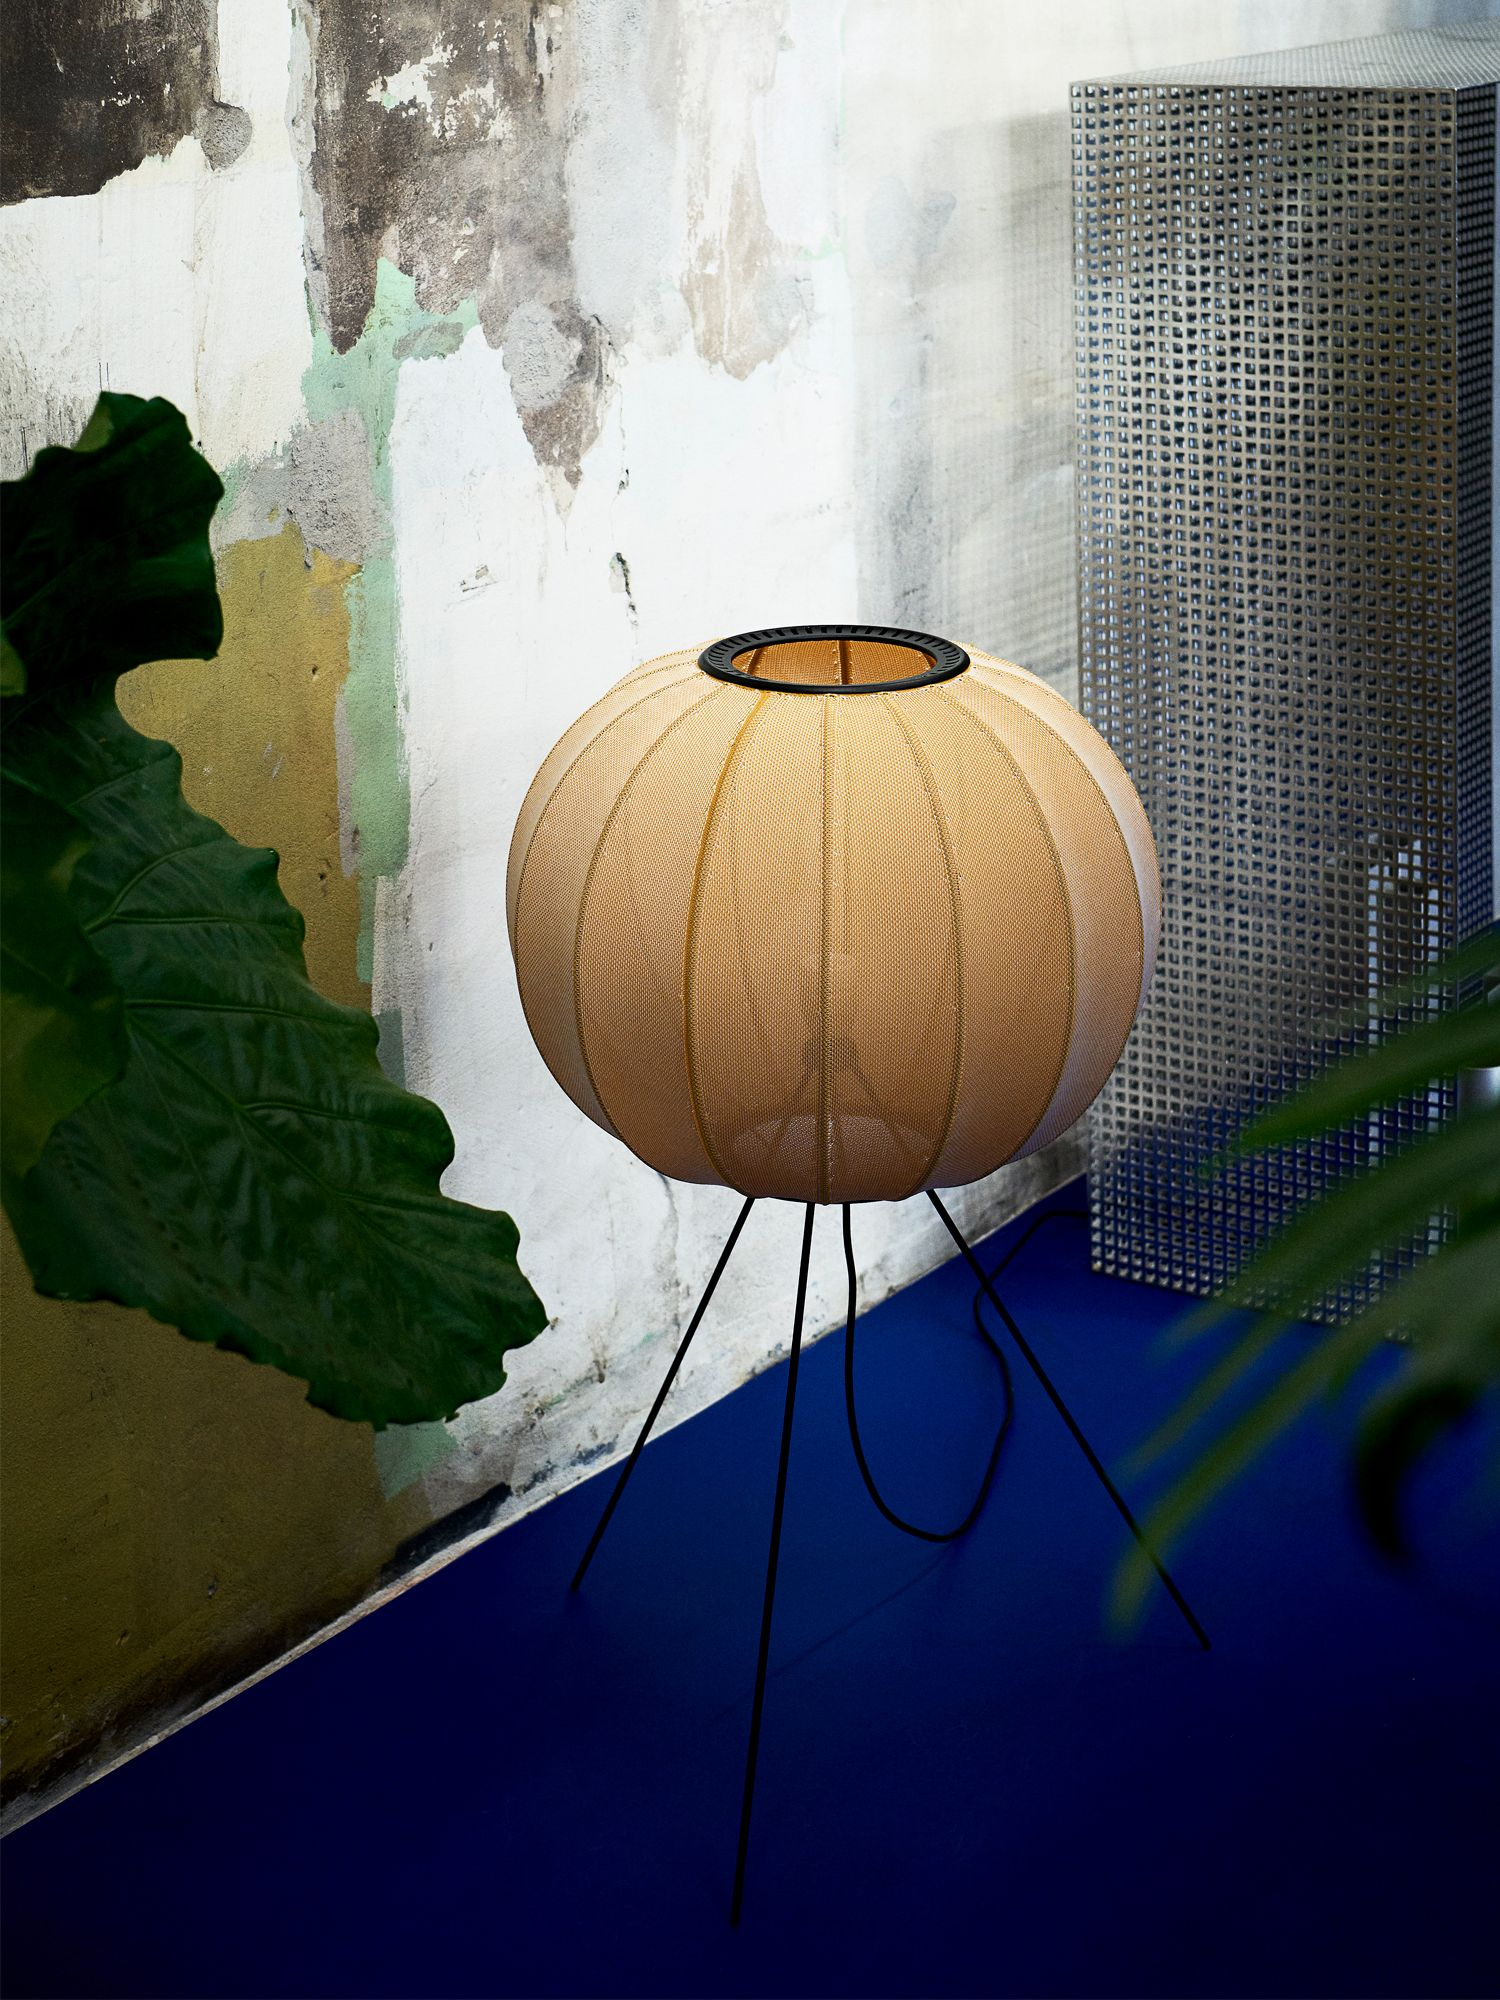 Made by Hand Knit-Wit lamp by Iskos-Berlin, from P5 Studio